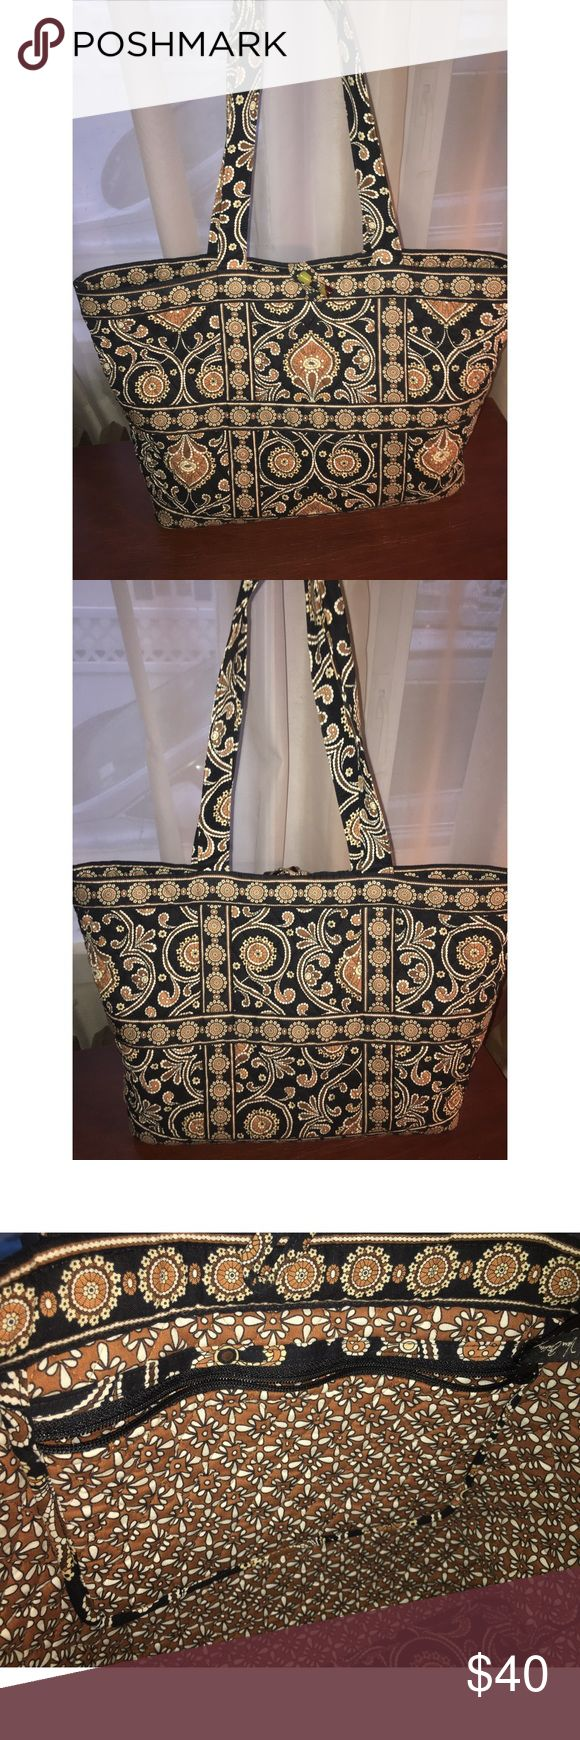 Vera Bradley RETIRED Caffé Latte Tote Bag Caffé Latte Vera Bradley Tote Bag! *RETIRED PRINT!! Great condition! Very gently used. 15.5 in along the (hard) bottom, 12.25 in height and 11.25 is the height of the handle. When the bag is fully open it is 14 inches wide. Toggle close. Two small pockets, one big zipper pocket. Vera Bradley Bags Totes